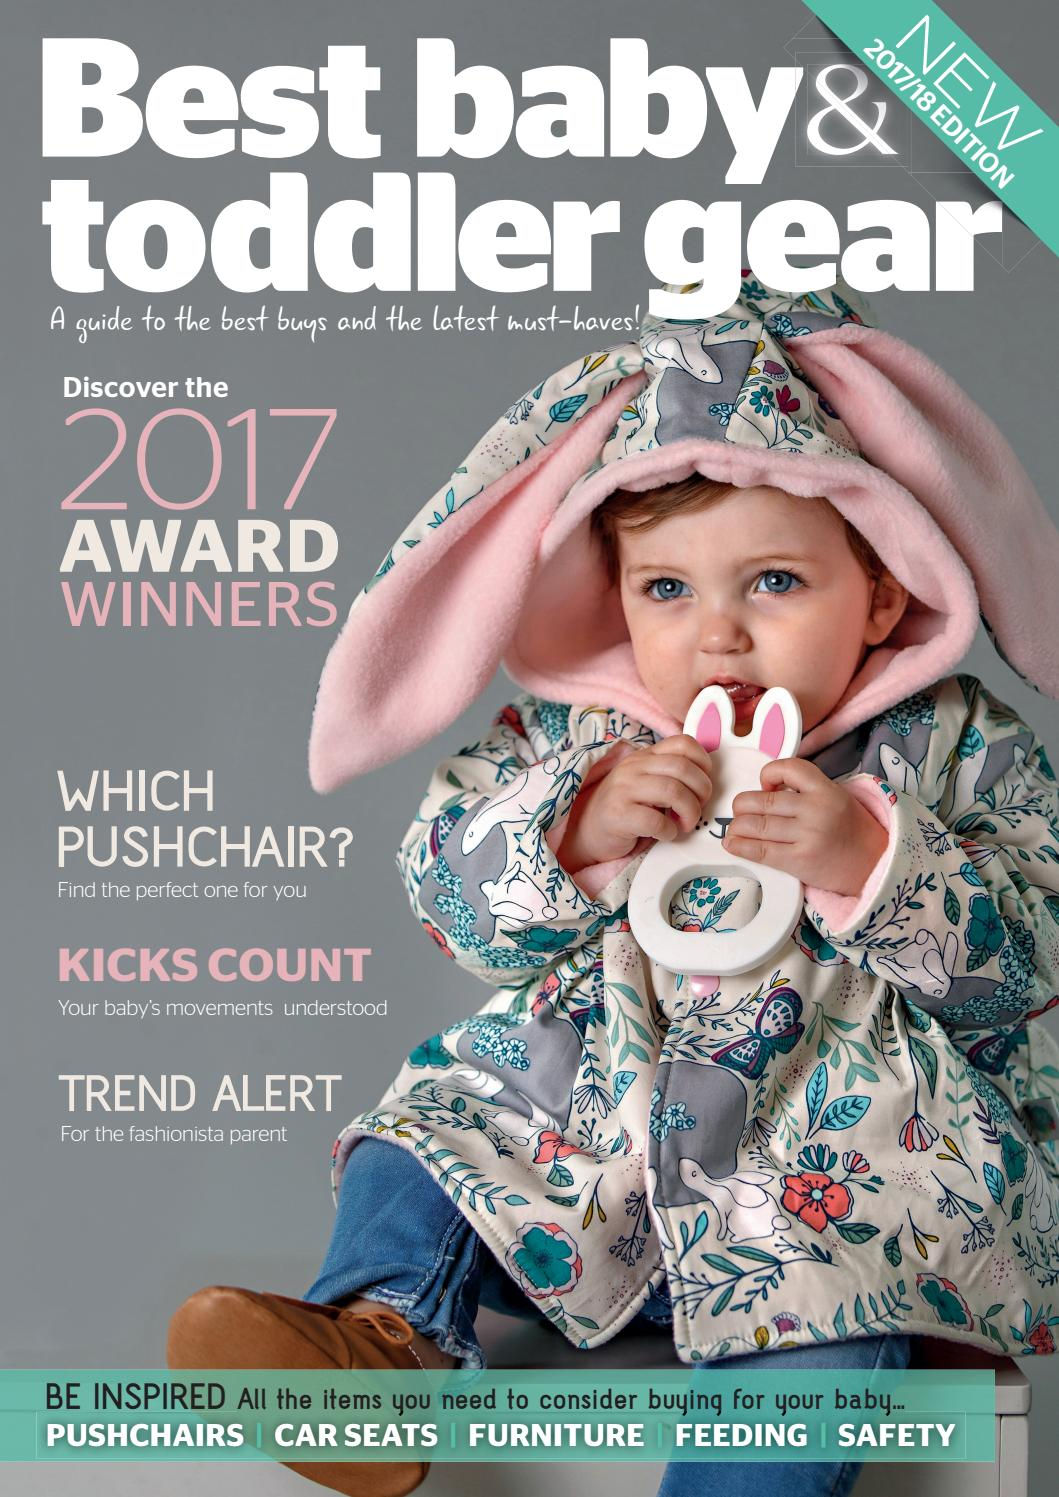 Peg Perego Pliko Matic Stroller Instructions Best Baby Toddler Gear Magazine 2017 18 By Native Media